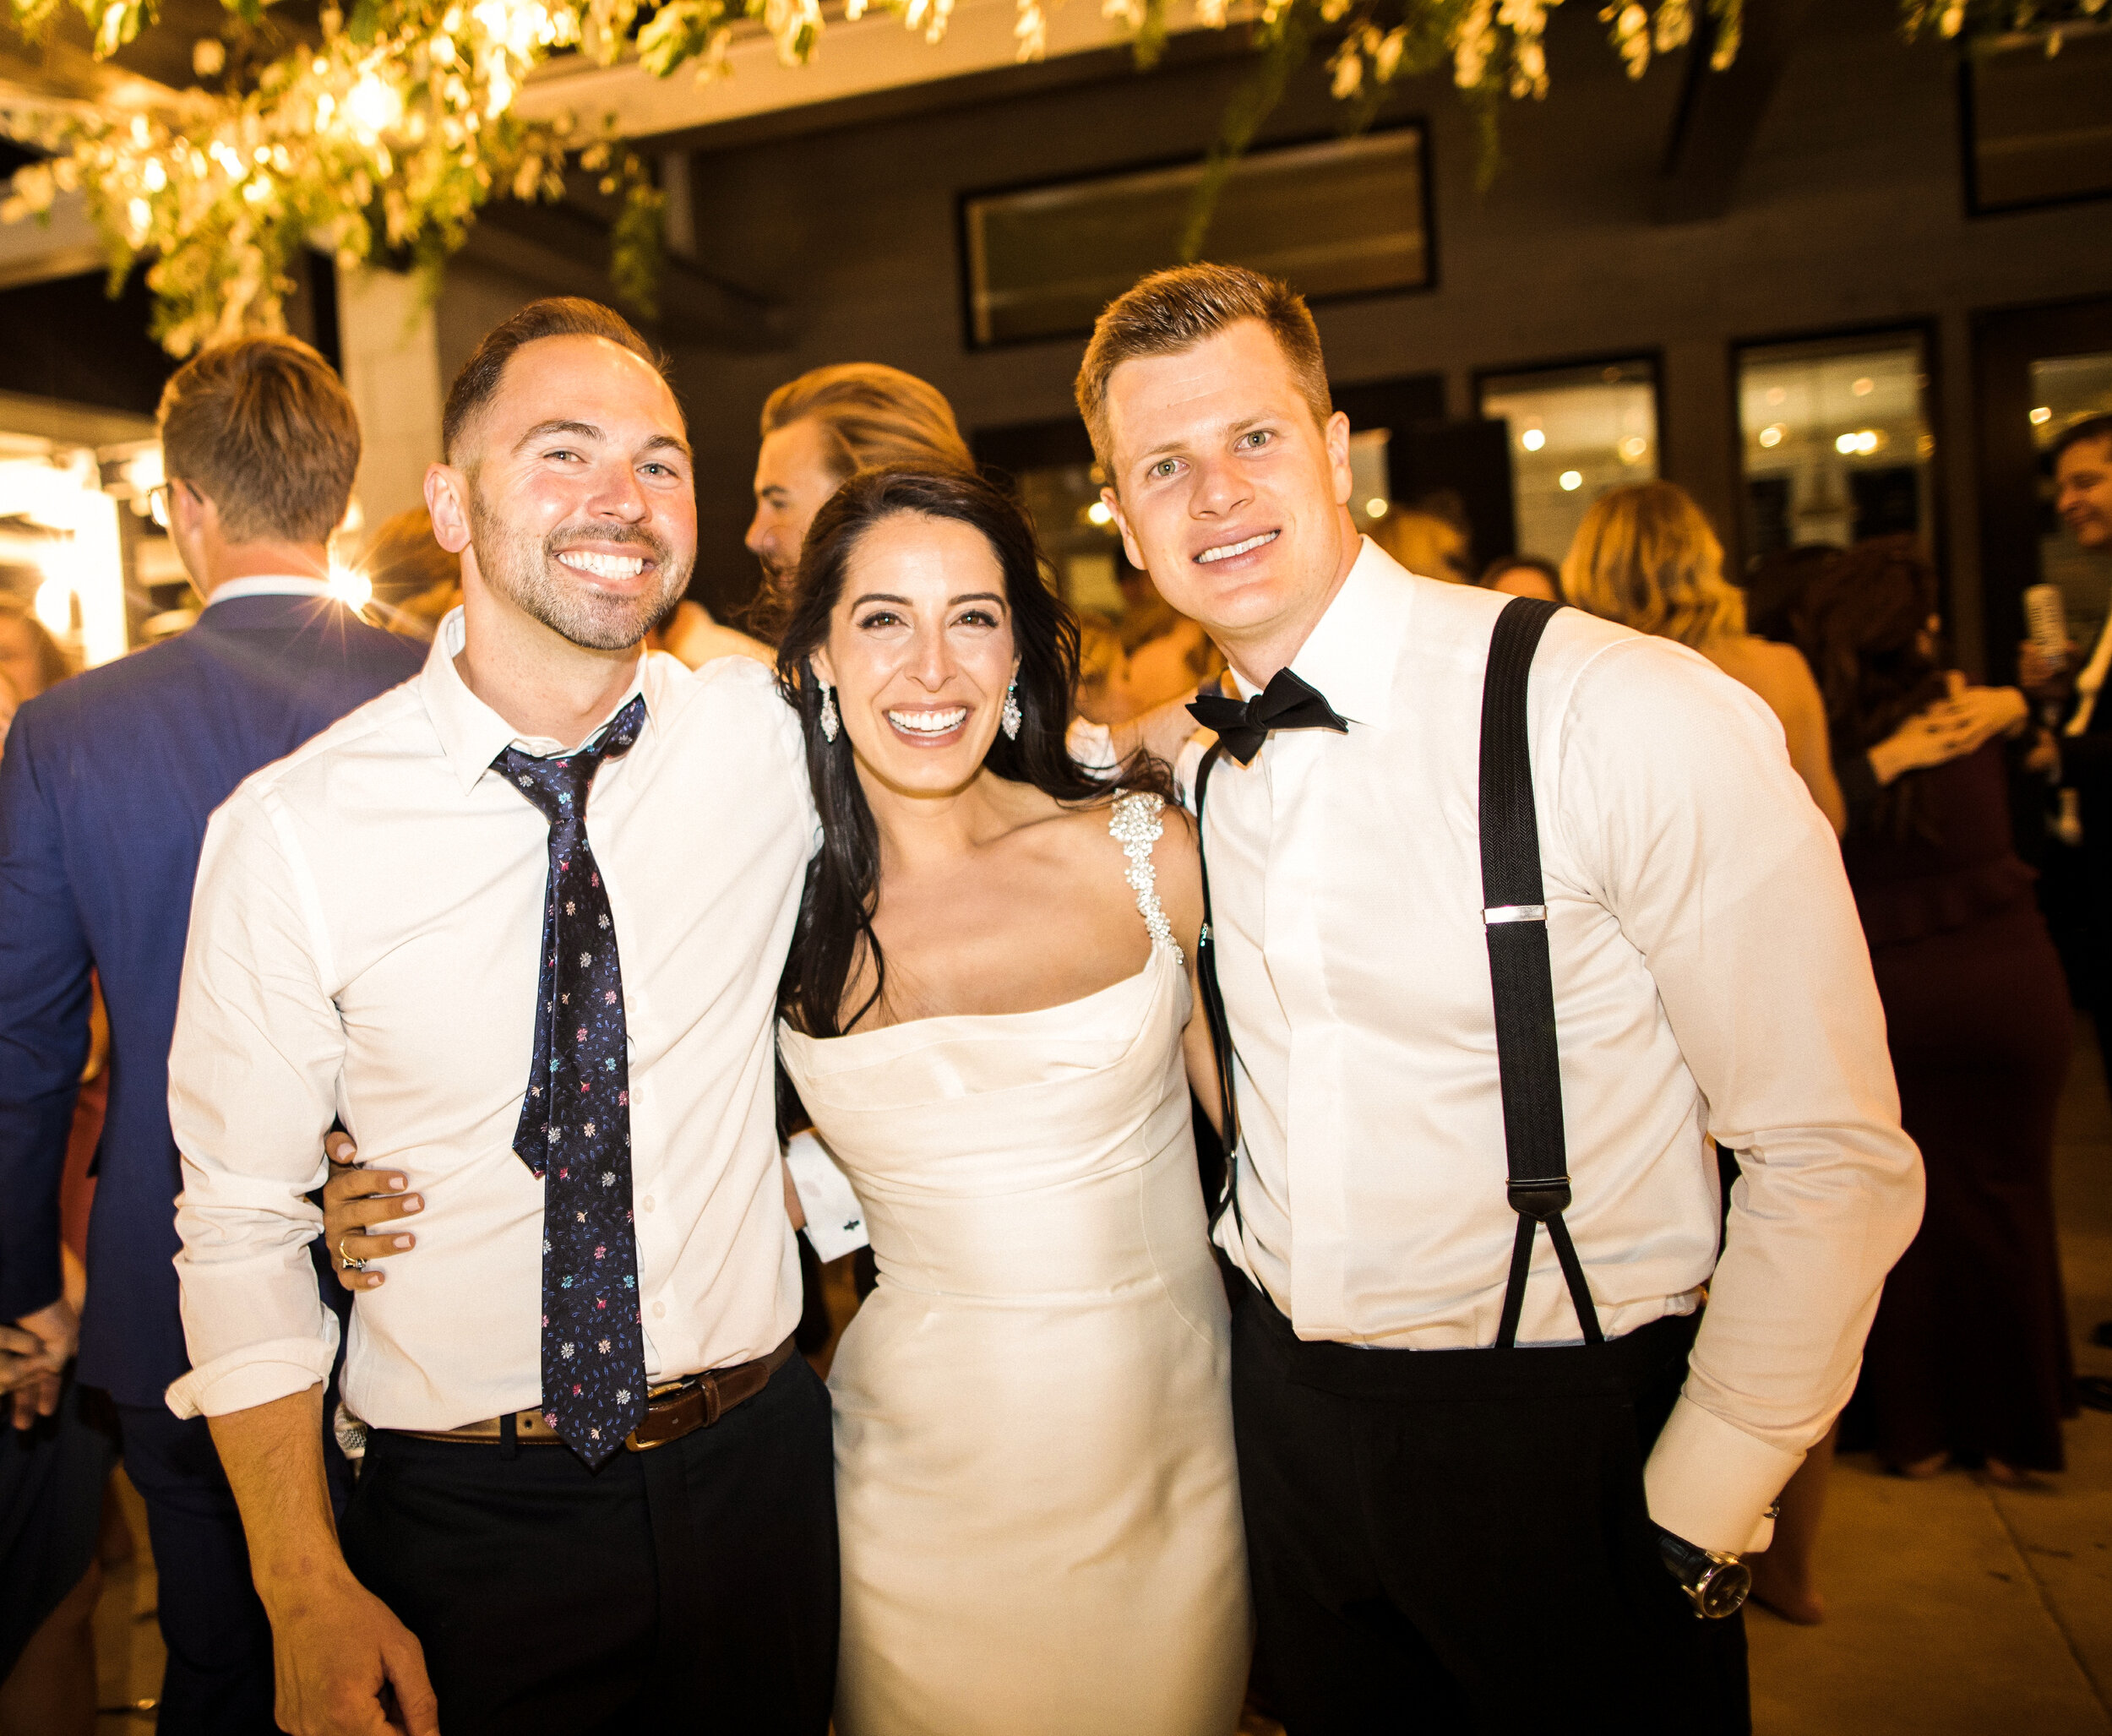 """Testimonials - We couldn't have been happier with our decision to use DJ Elliott for our wedding. Leading up to the event Elliott took the time to get to know us and our style so he could really understand what we were looking for and the environment we wanted to create. Elliott worked with us to develop unique dinner and reception playlists that incorporated his suggestions but always put our vision and opinions first. During our event Elliott went out of his way to make sure things ran smoothly and on schedule, even helping other vendors and making sure our food and beverage needs were being met. On the dance floor Elliott brought high energy, smooth transitions, and timely selections that kept the party going strong all night (with several encores). Since the event, we have had multiple guests comment on Elliott's performance and have even had friends request our playlists to try and """"save"""" other wedding receptions as they were happening.All the best,Garrett and Jaqueline"""